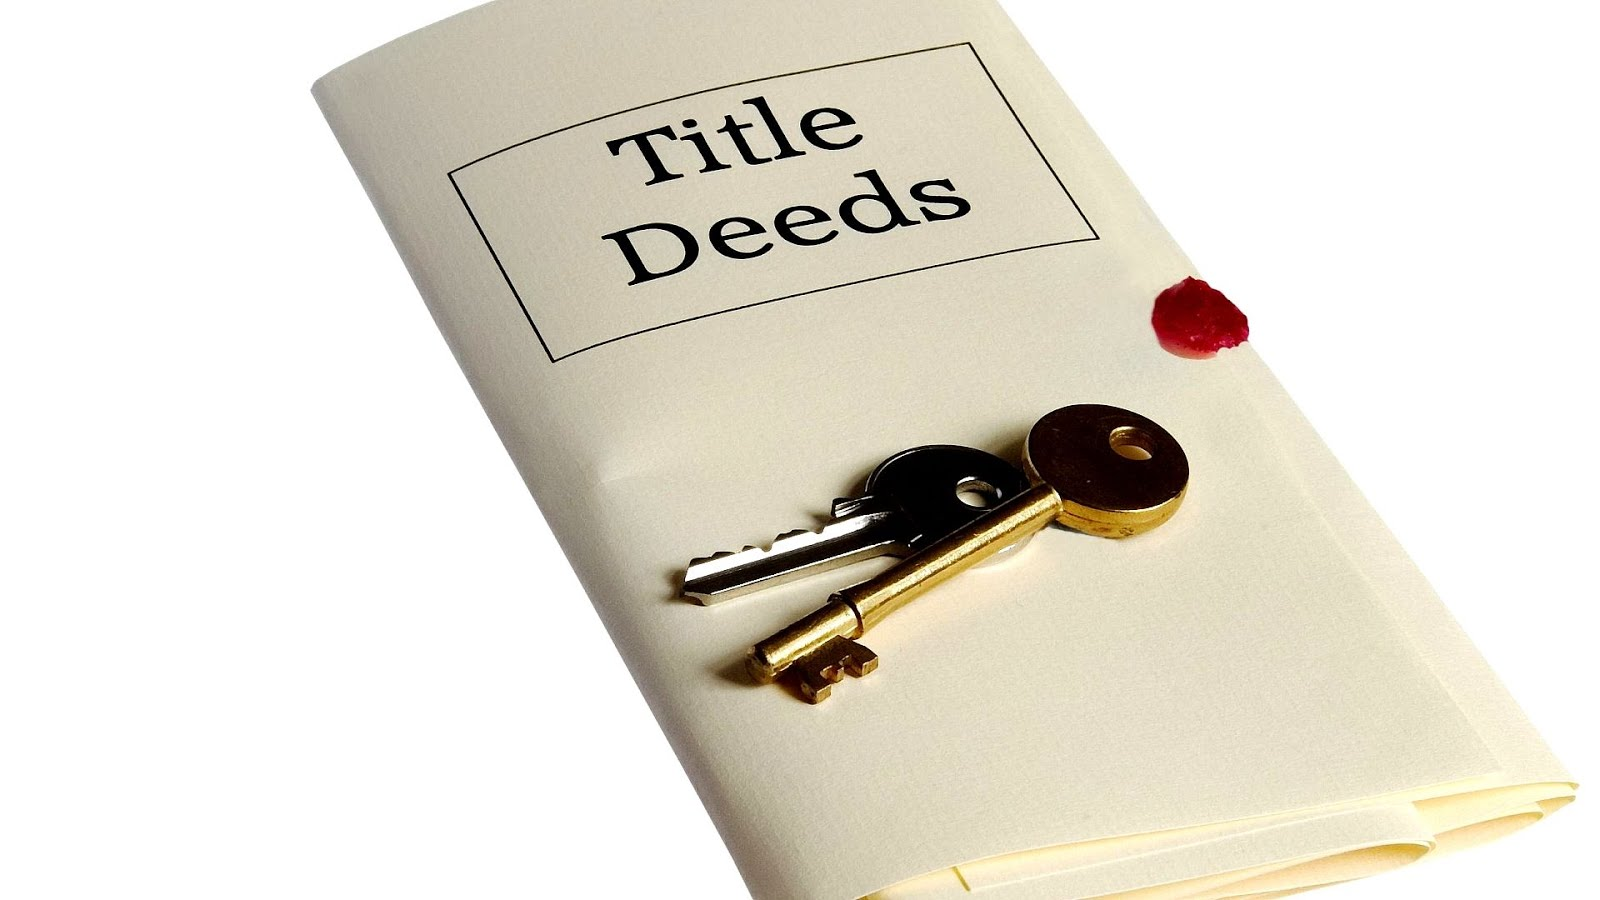 Who Holds Title Deeds - Title Choices